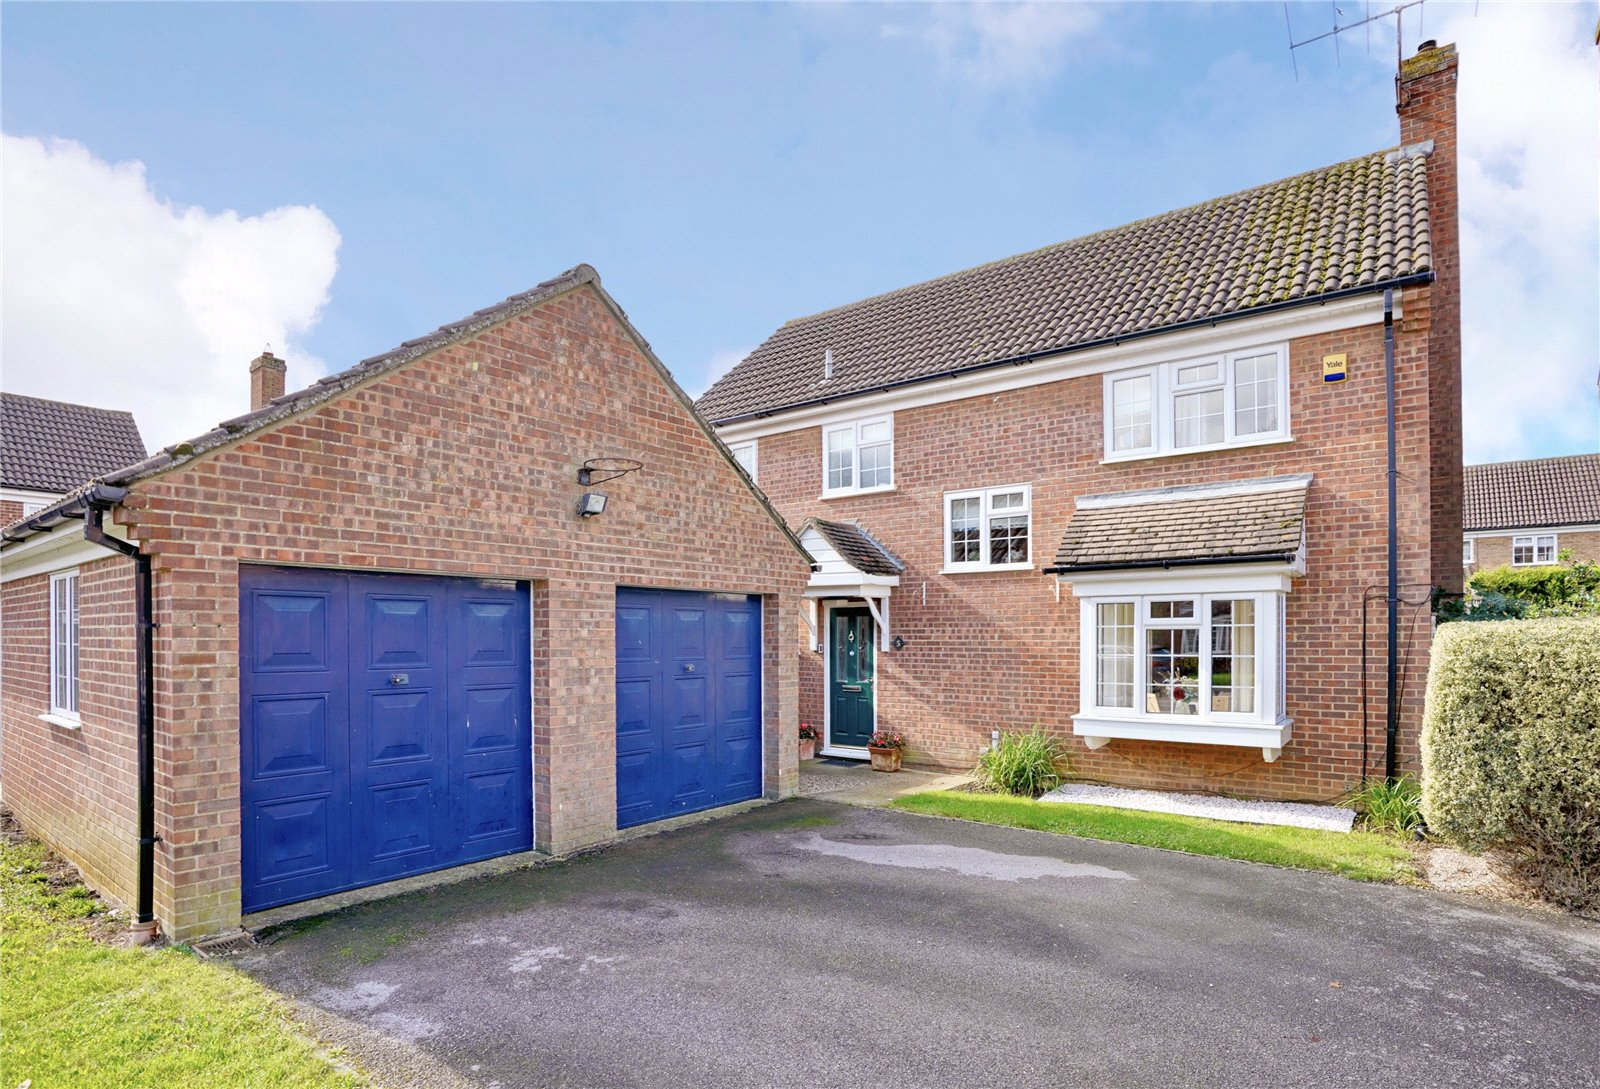 4 bed house for sale in Eaton Socon, PE19 8QG 0